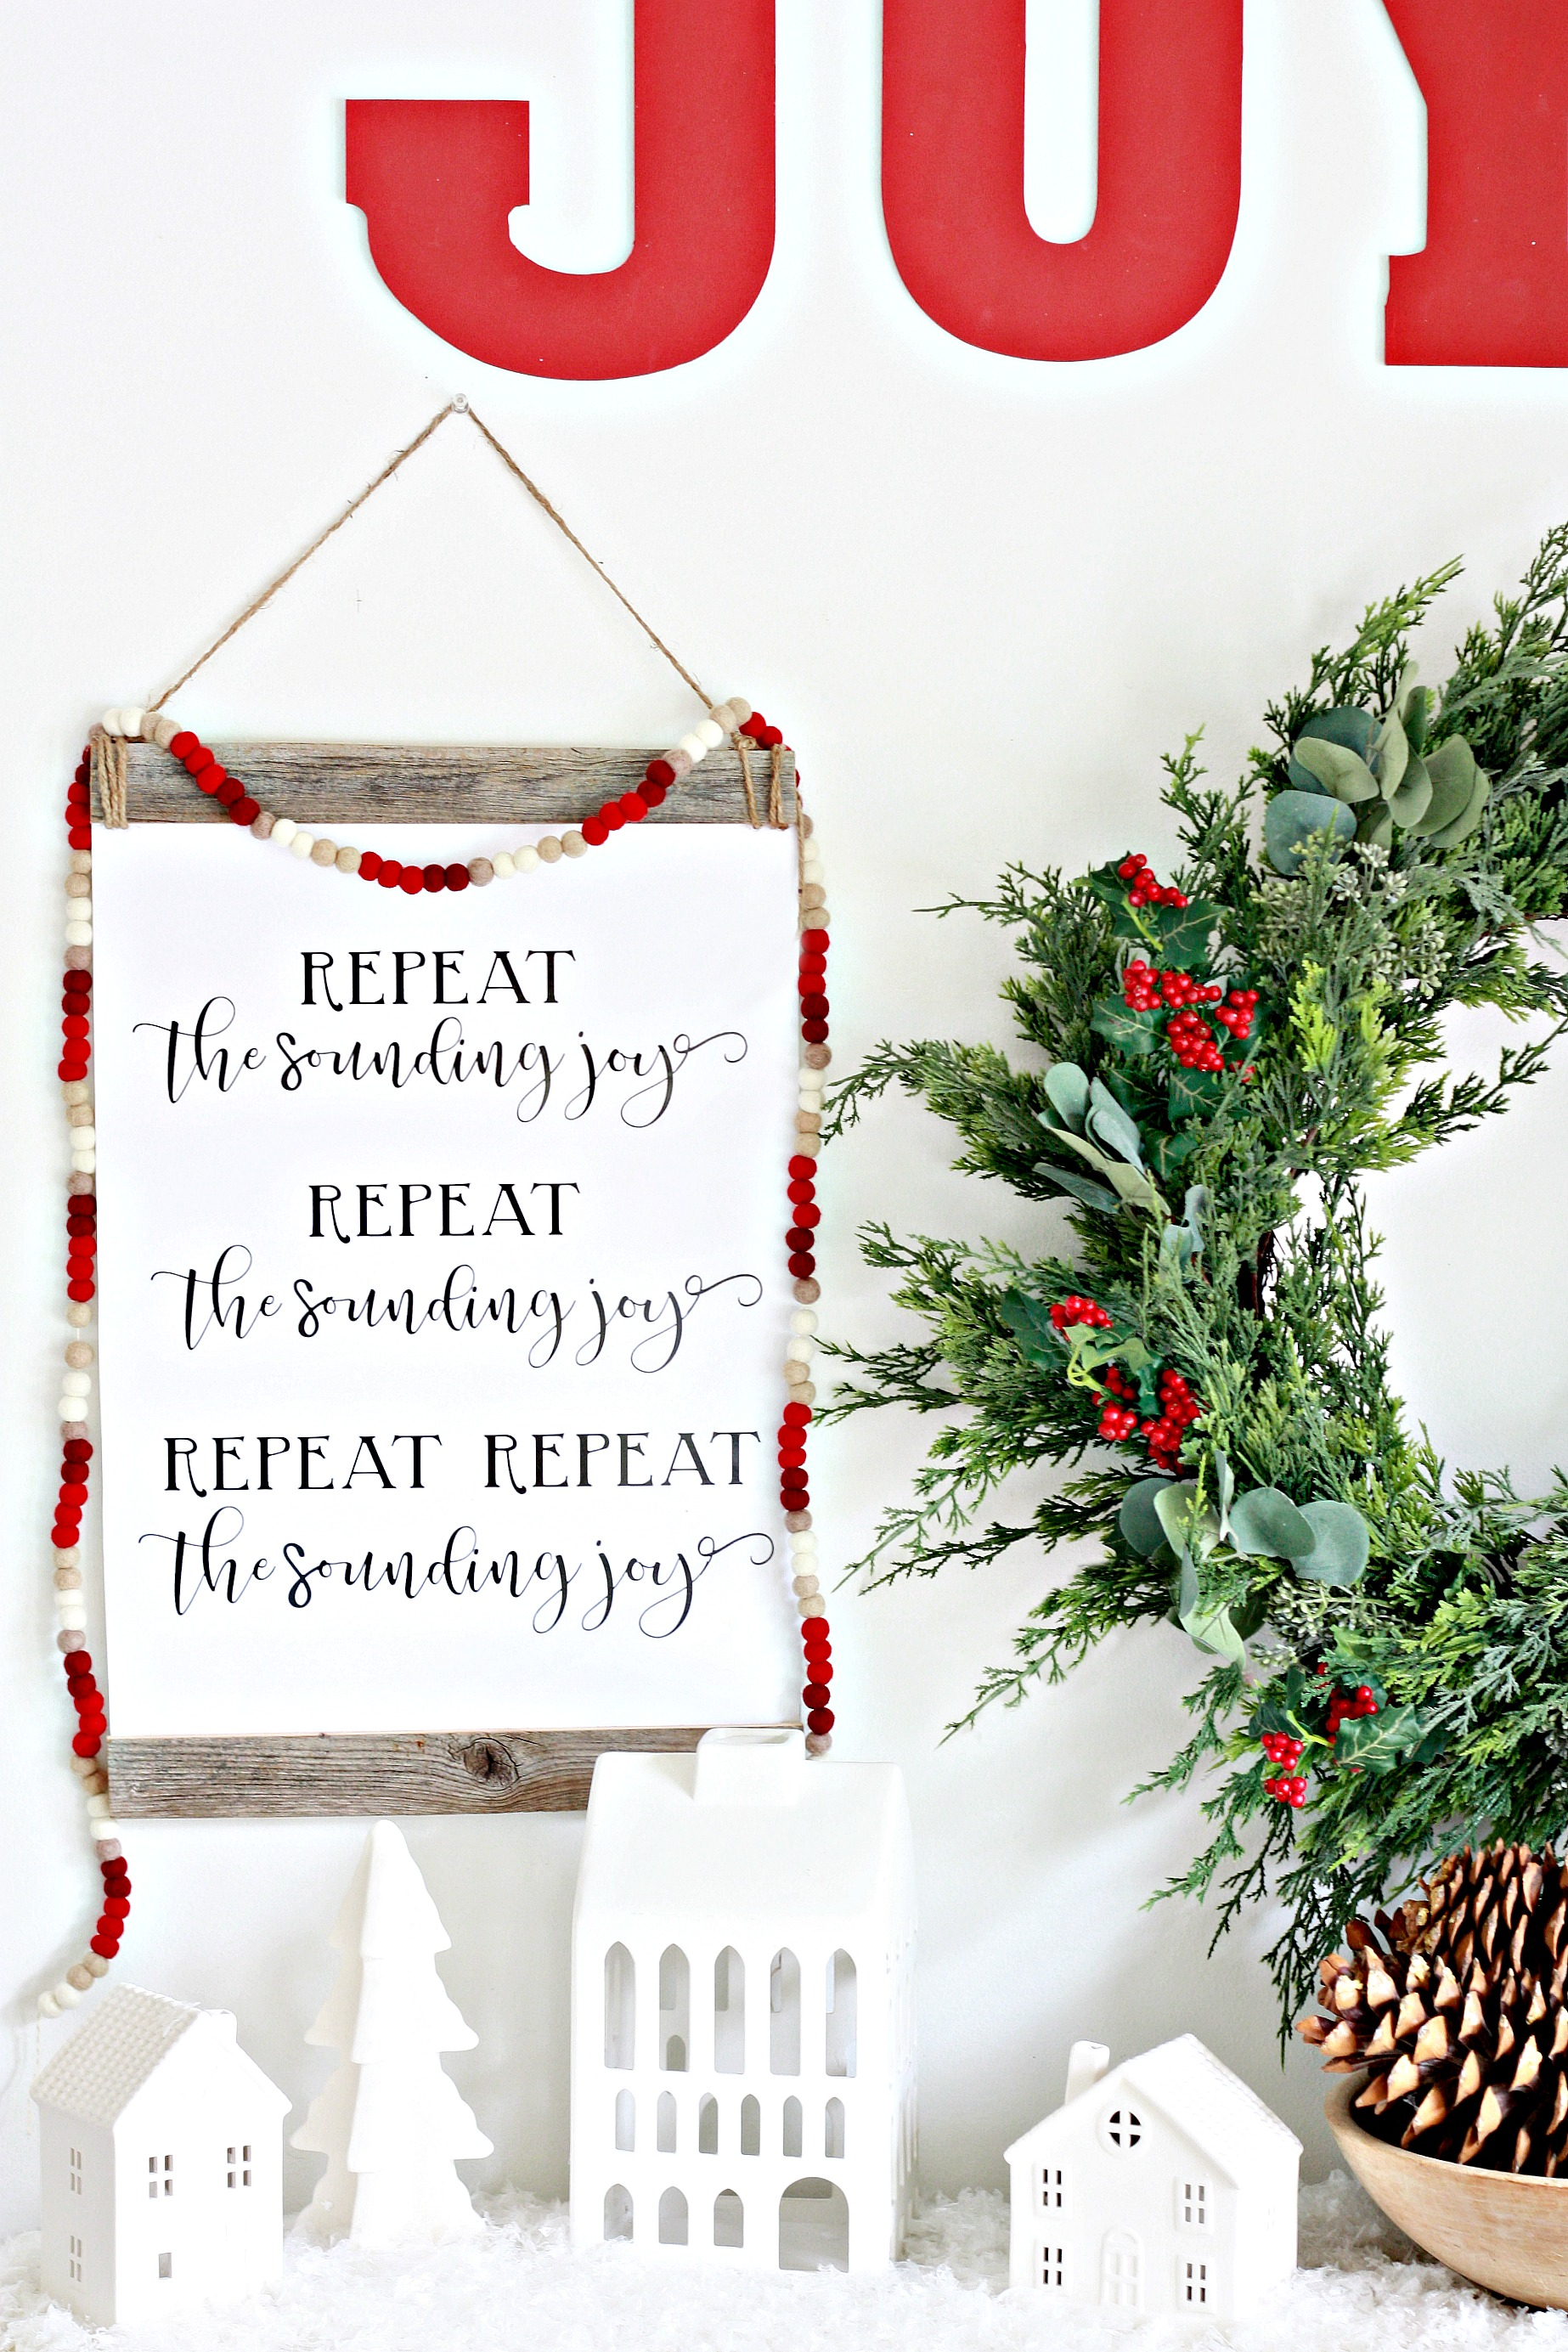 25+ Free Christmas Printables for your Home - Repeat The Sounding Joy | Nest of Posies